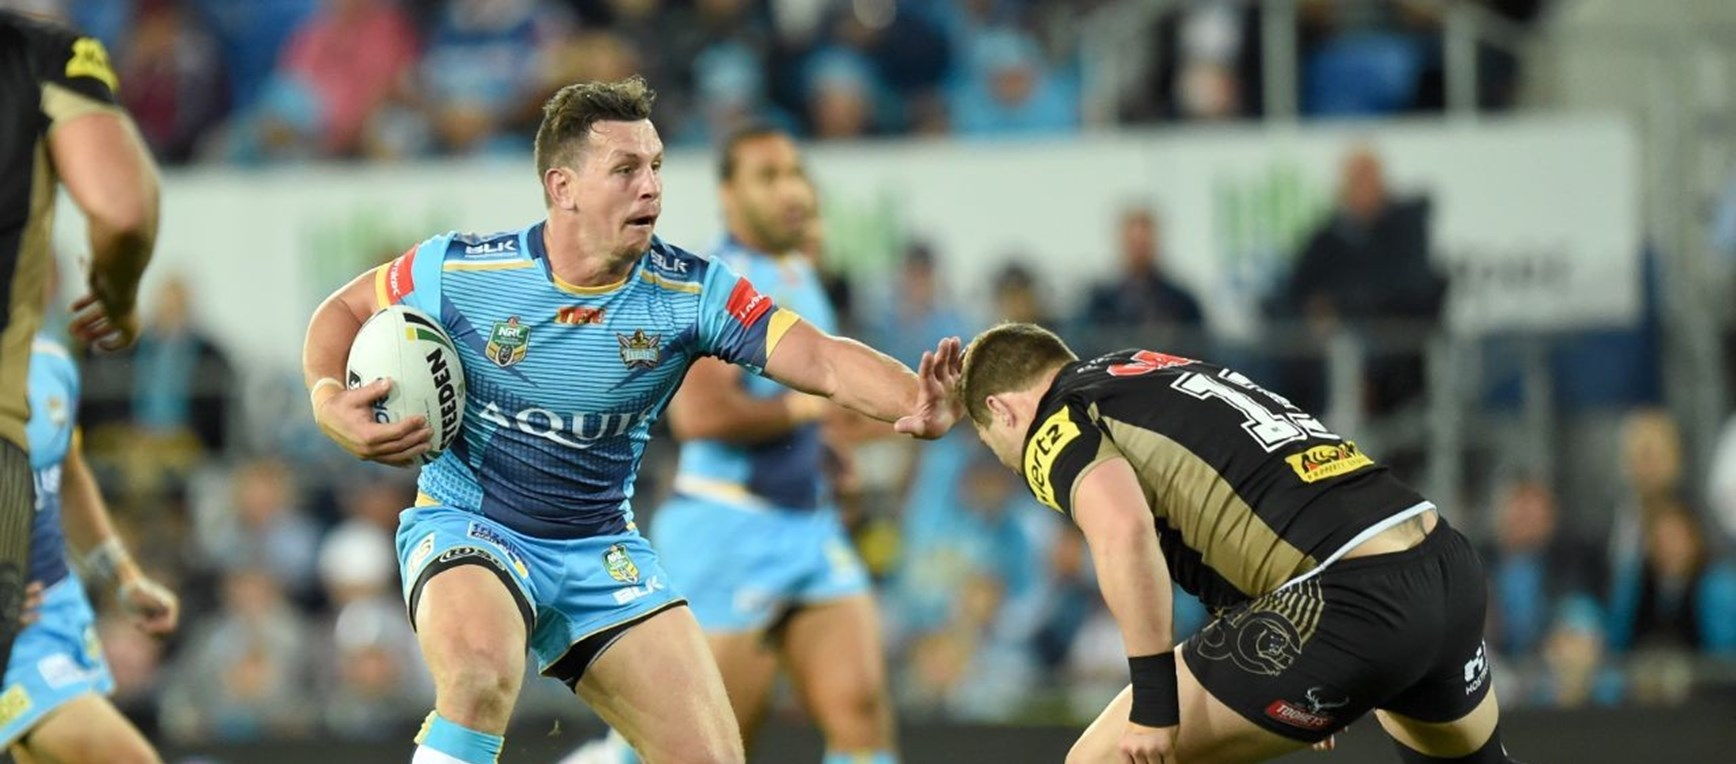 PHOTO GALLERY ... round 25 v Panthers